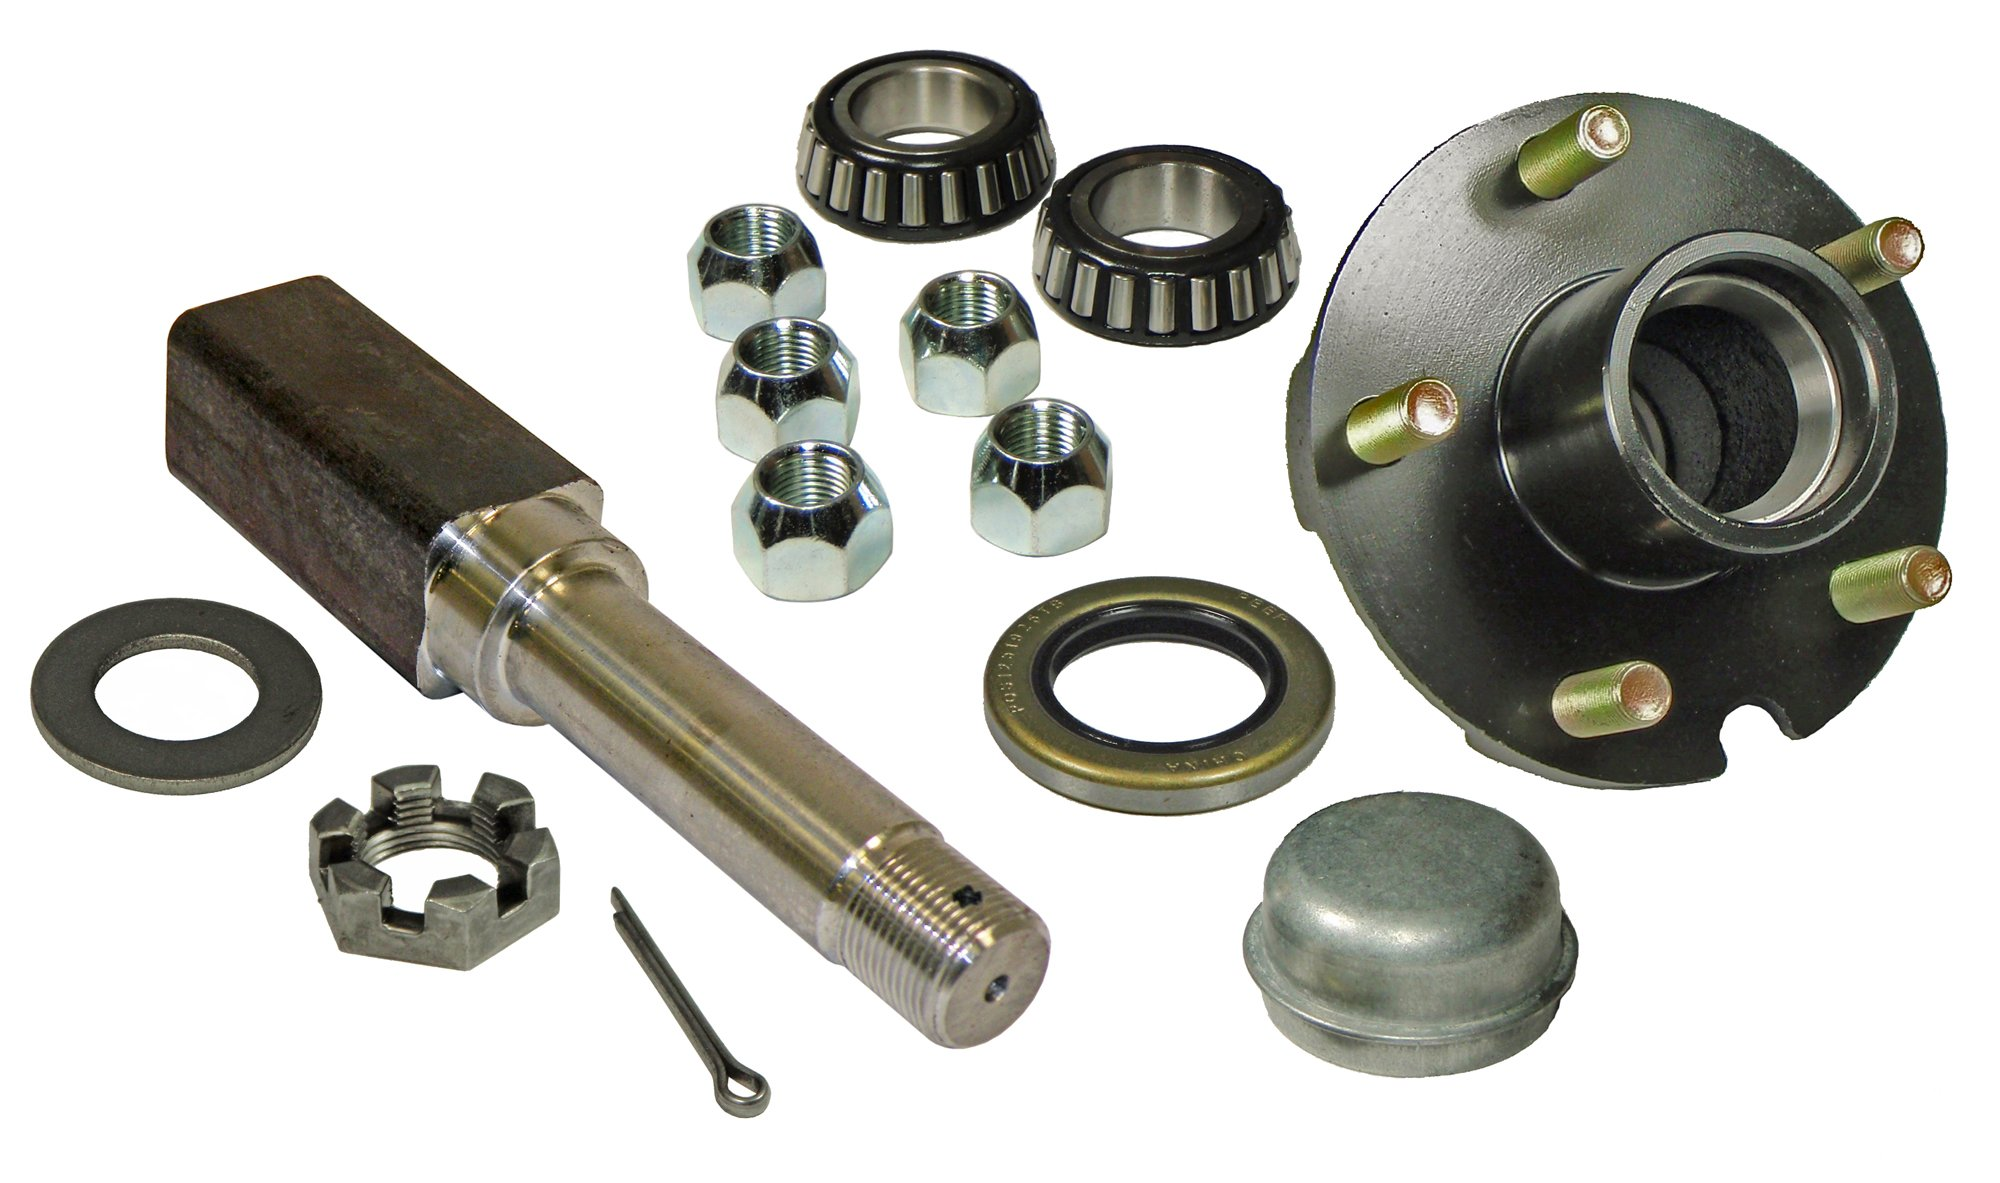 Rigid Hitch Single - 5-Bolt on 4-1/2 Inch Hub Assembly (SQ-2000545) Includes (1) Square Stock 1 Inch Straight Spindle & Bearings by Rigid Hitch